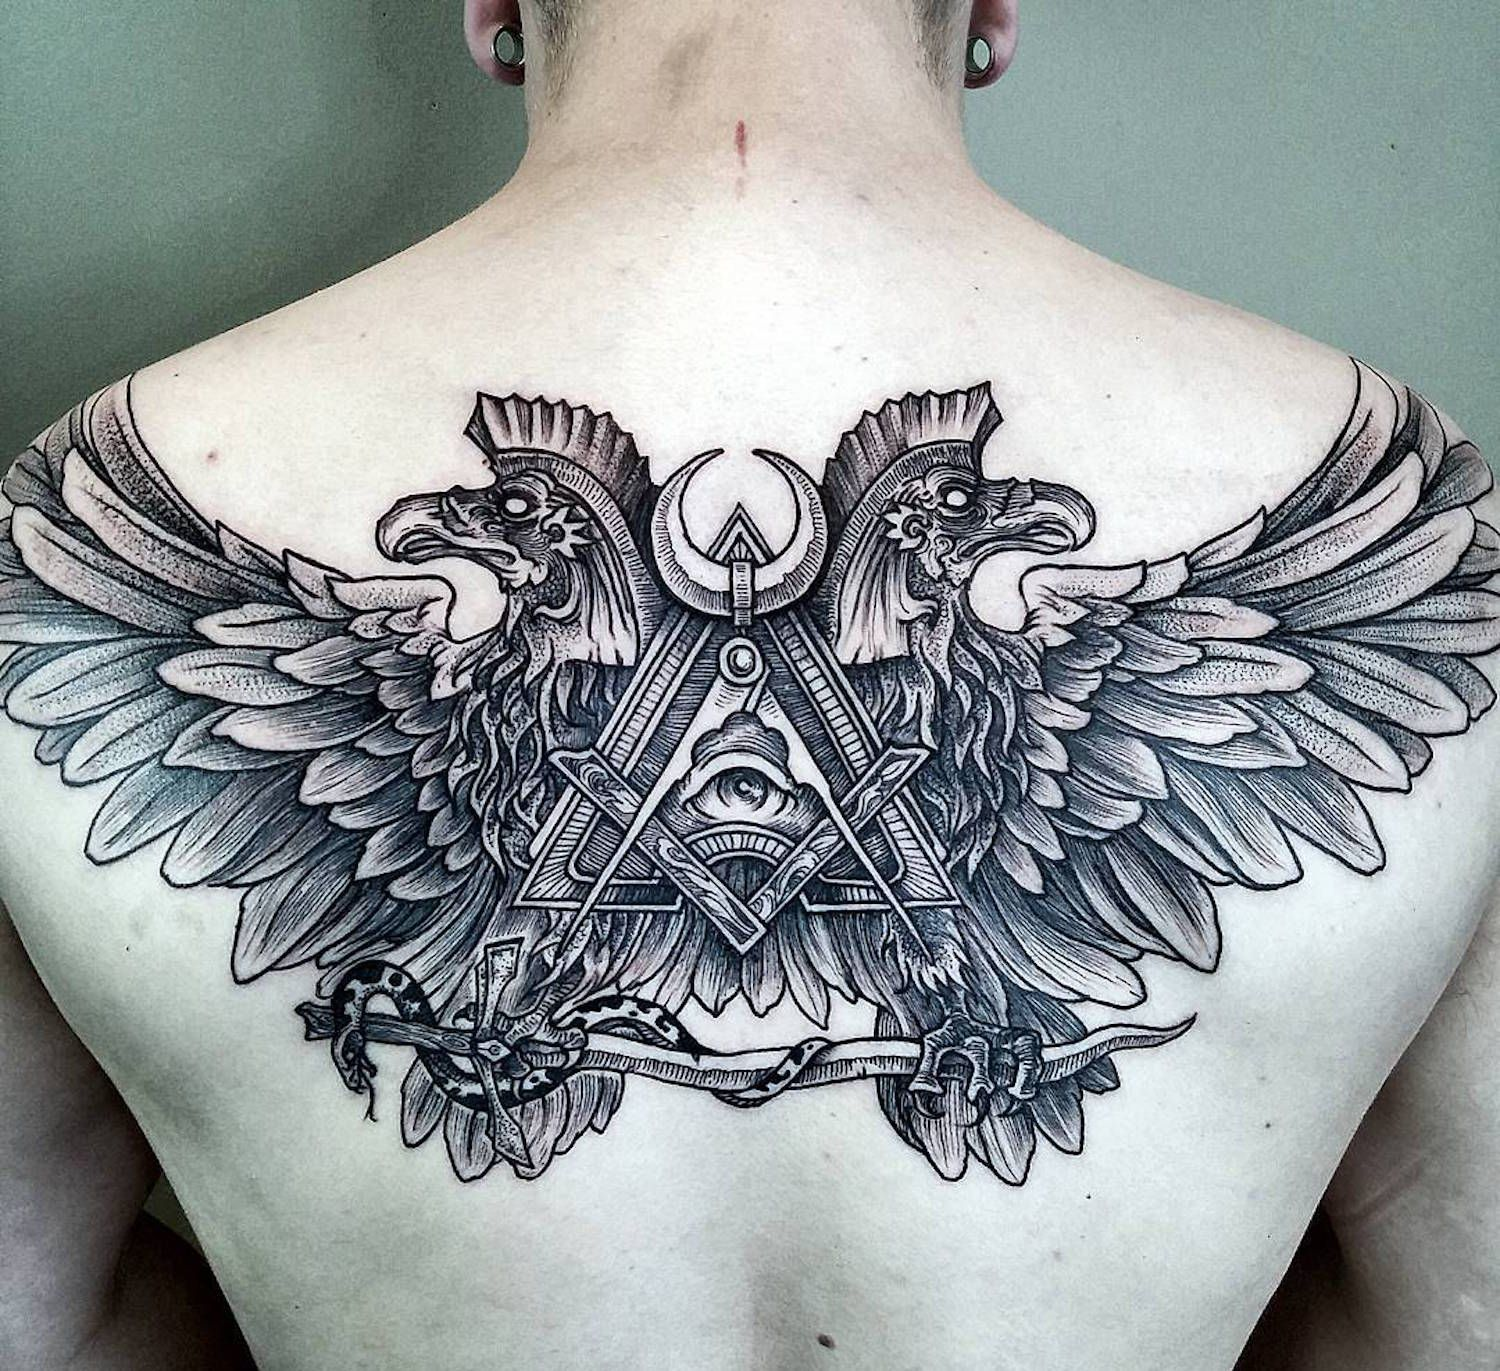 Back tattoo design ideas for men by phil tworavens